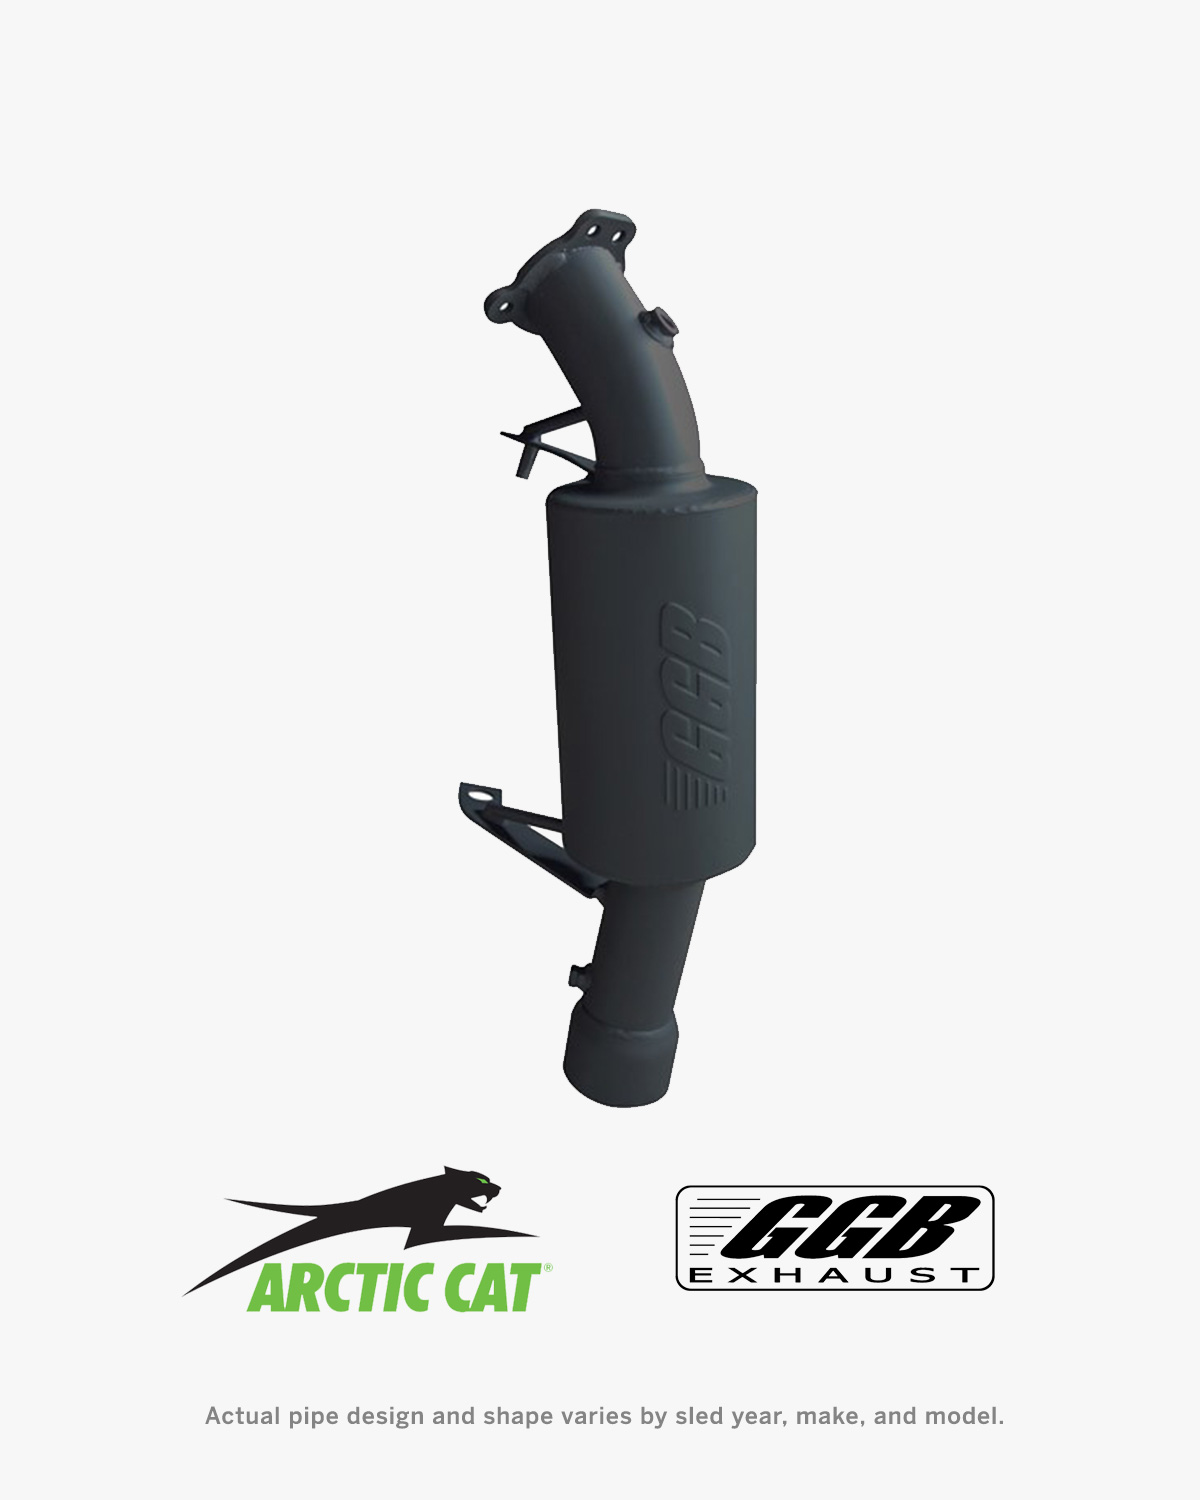 Picture of GGB Mountain Exhaust for Arctic Cat Snowmobiles